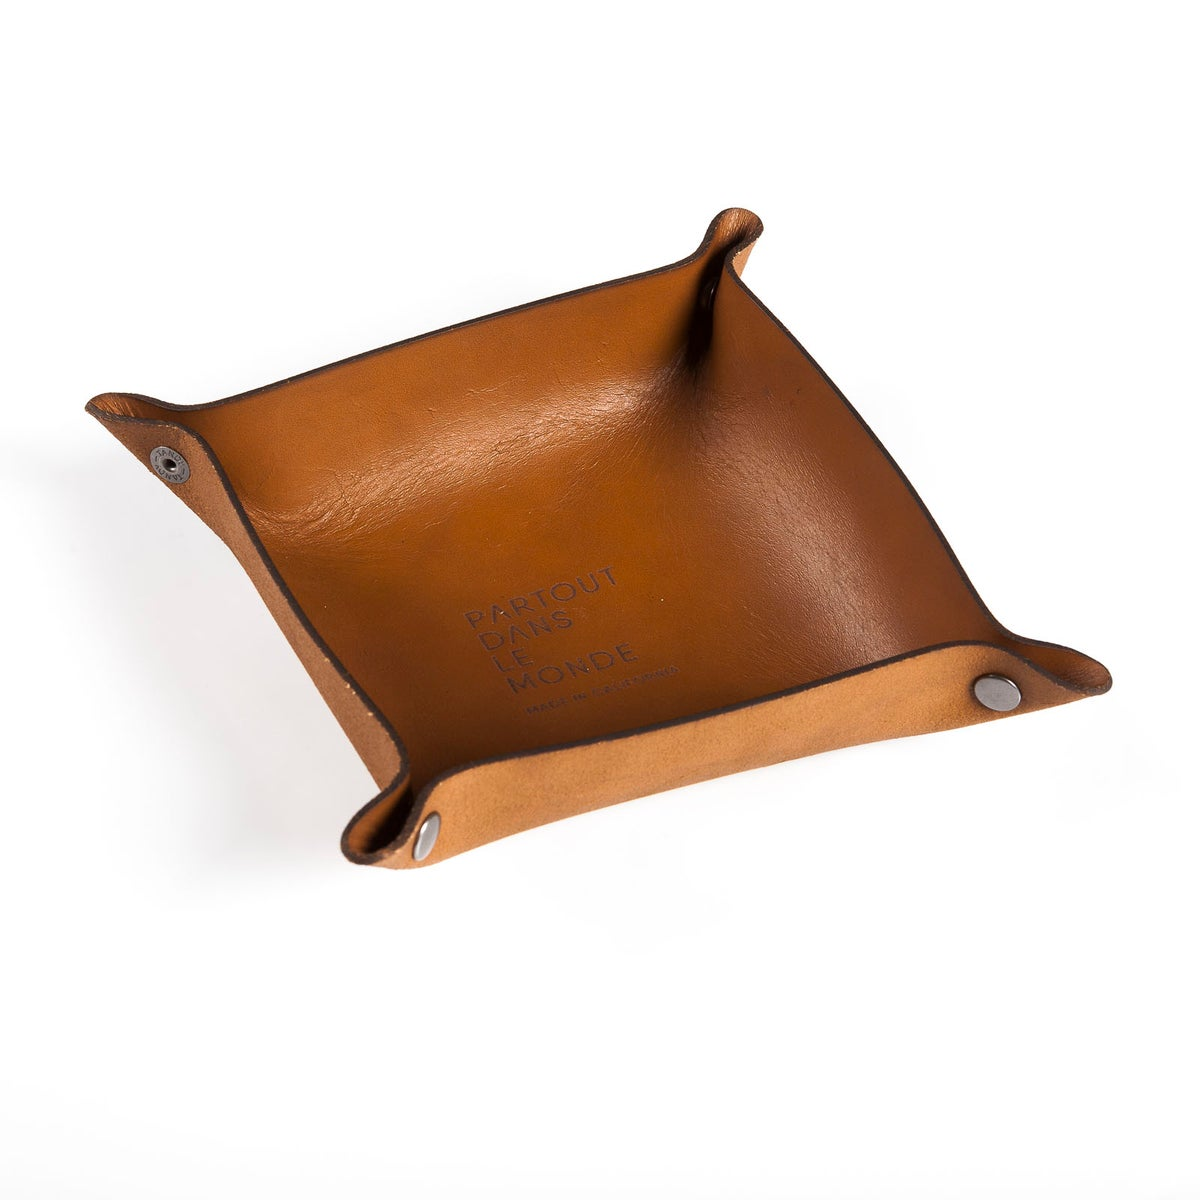 Image of Partout Valet Tray